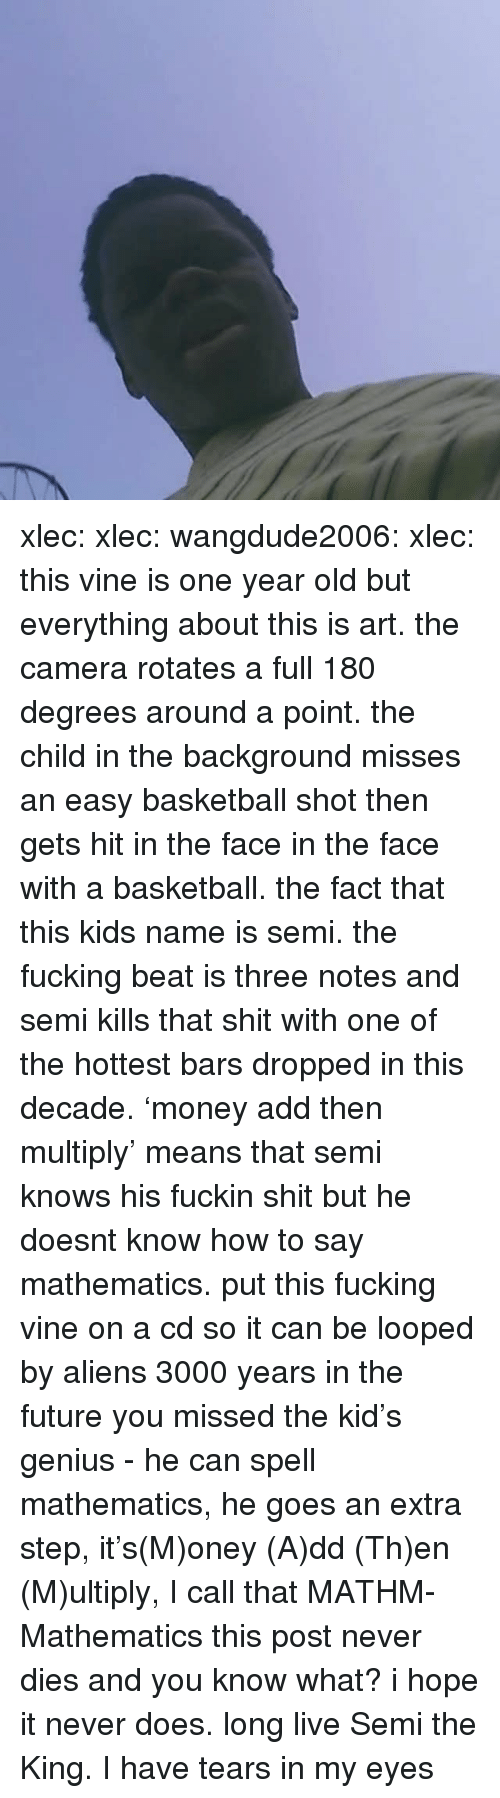 Basketball, Fucking, and Future: xlec:  xlec:  wangdude2006:  xlec:  this vine is one year old but everything about this is art. the camera rotates a full 180 degrees around a point. the child in the background misses an easy basketball shot then gets hit in the face in the face with a basketball. the fact that this kids name is semi. the fucking beat is three notes and semi kills that shit with one of the hottest bars dropped in this decade. 'money add then multiply' means that semi knows his fuckin shit but he doesnt know how to say mathematics. put this fucking vine on a cd so it can be looped by aliens 3000 years in the future  you missed the kid's genius - he can spell mathematics, he goes an extra step, it's(M)oney (A)dd (Th)en (M)ultiply, I call that MATHM-Mathematics    this post never dies and you know what? i hope it never does. long live Semi the King.   I have tears in my eyes